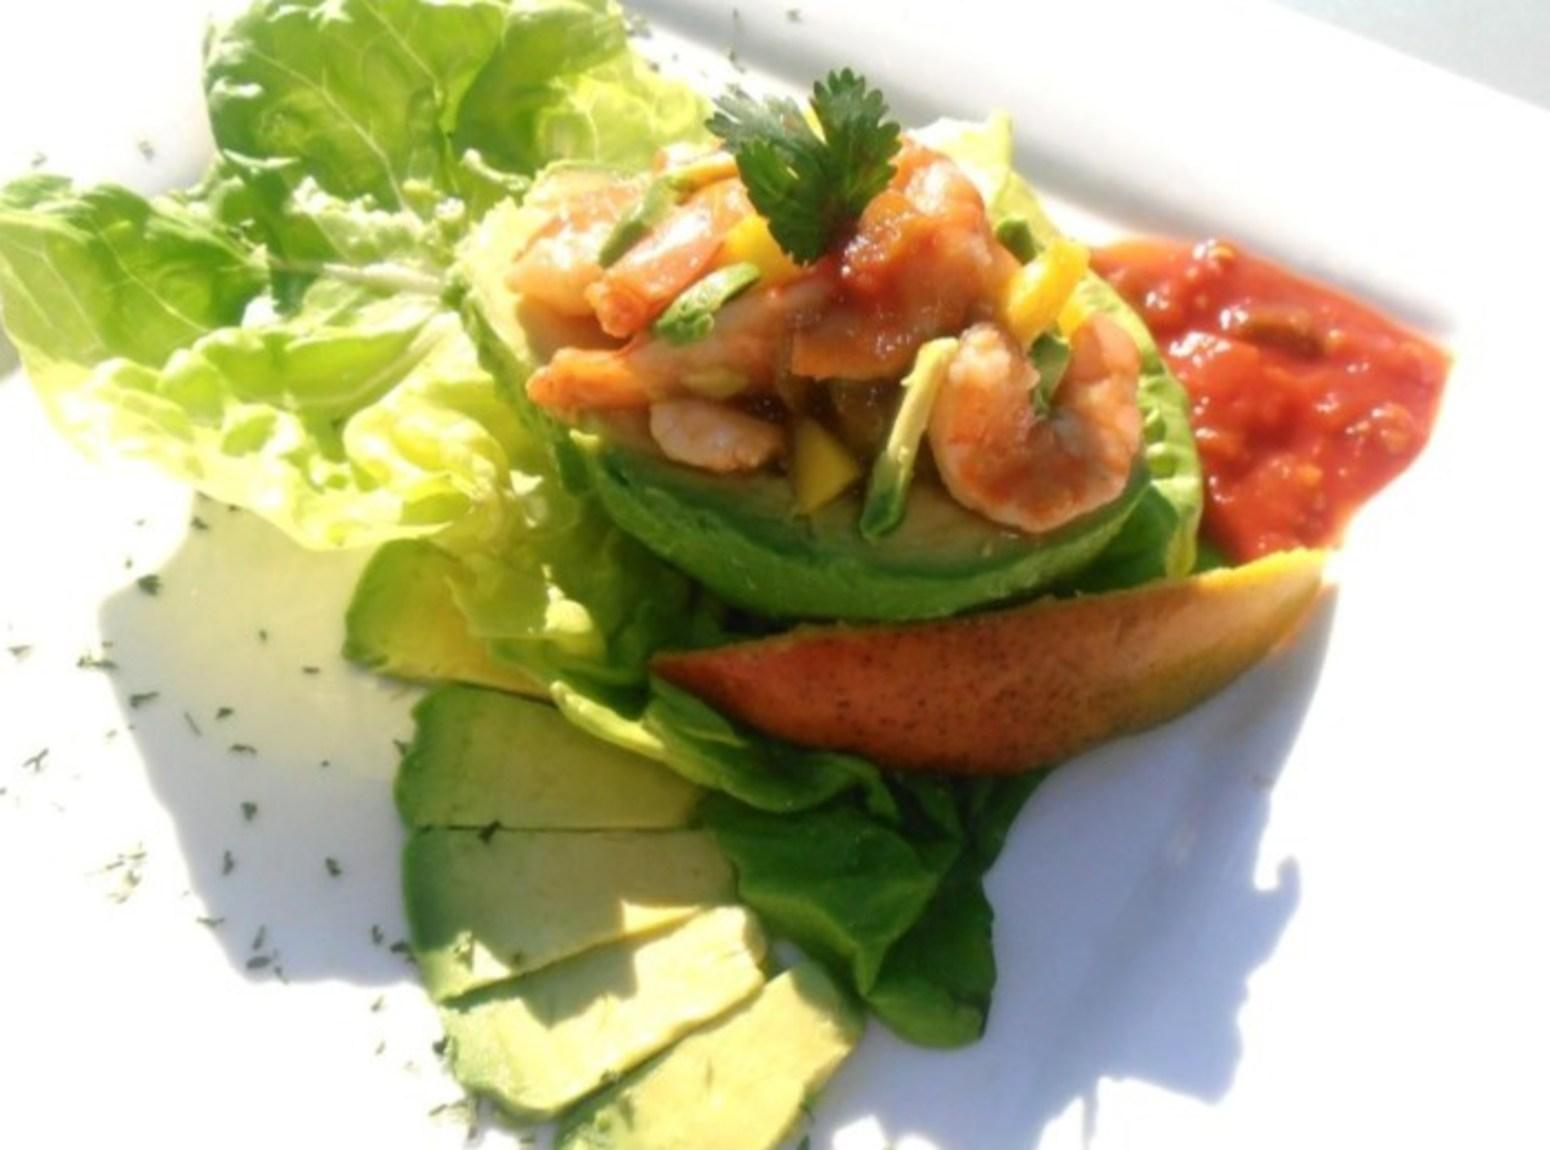 Acapulco Avocado Salad Recipe